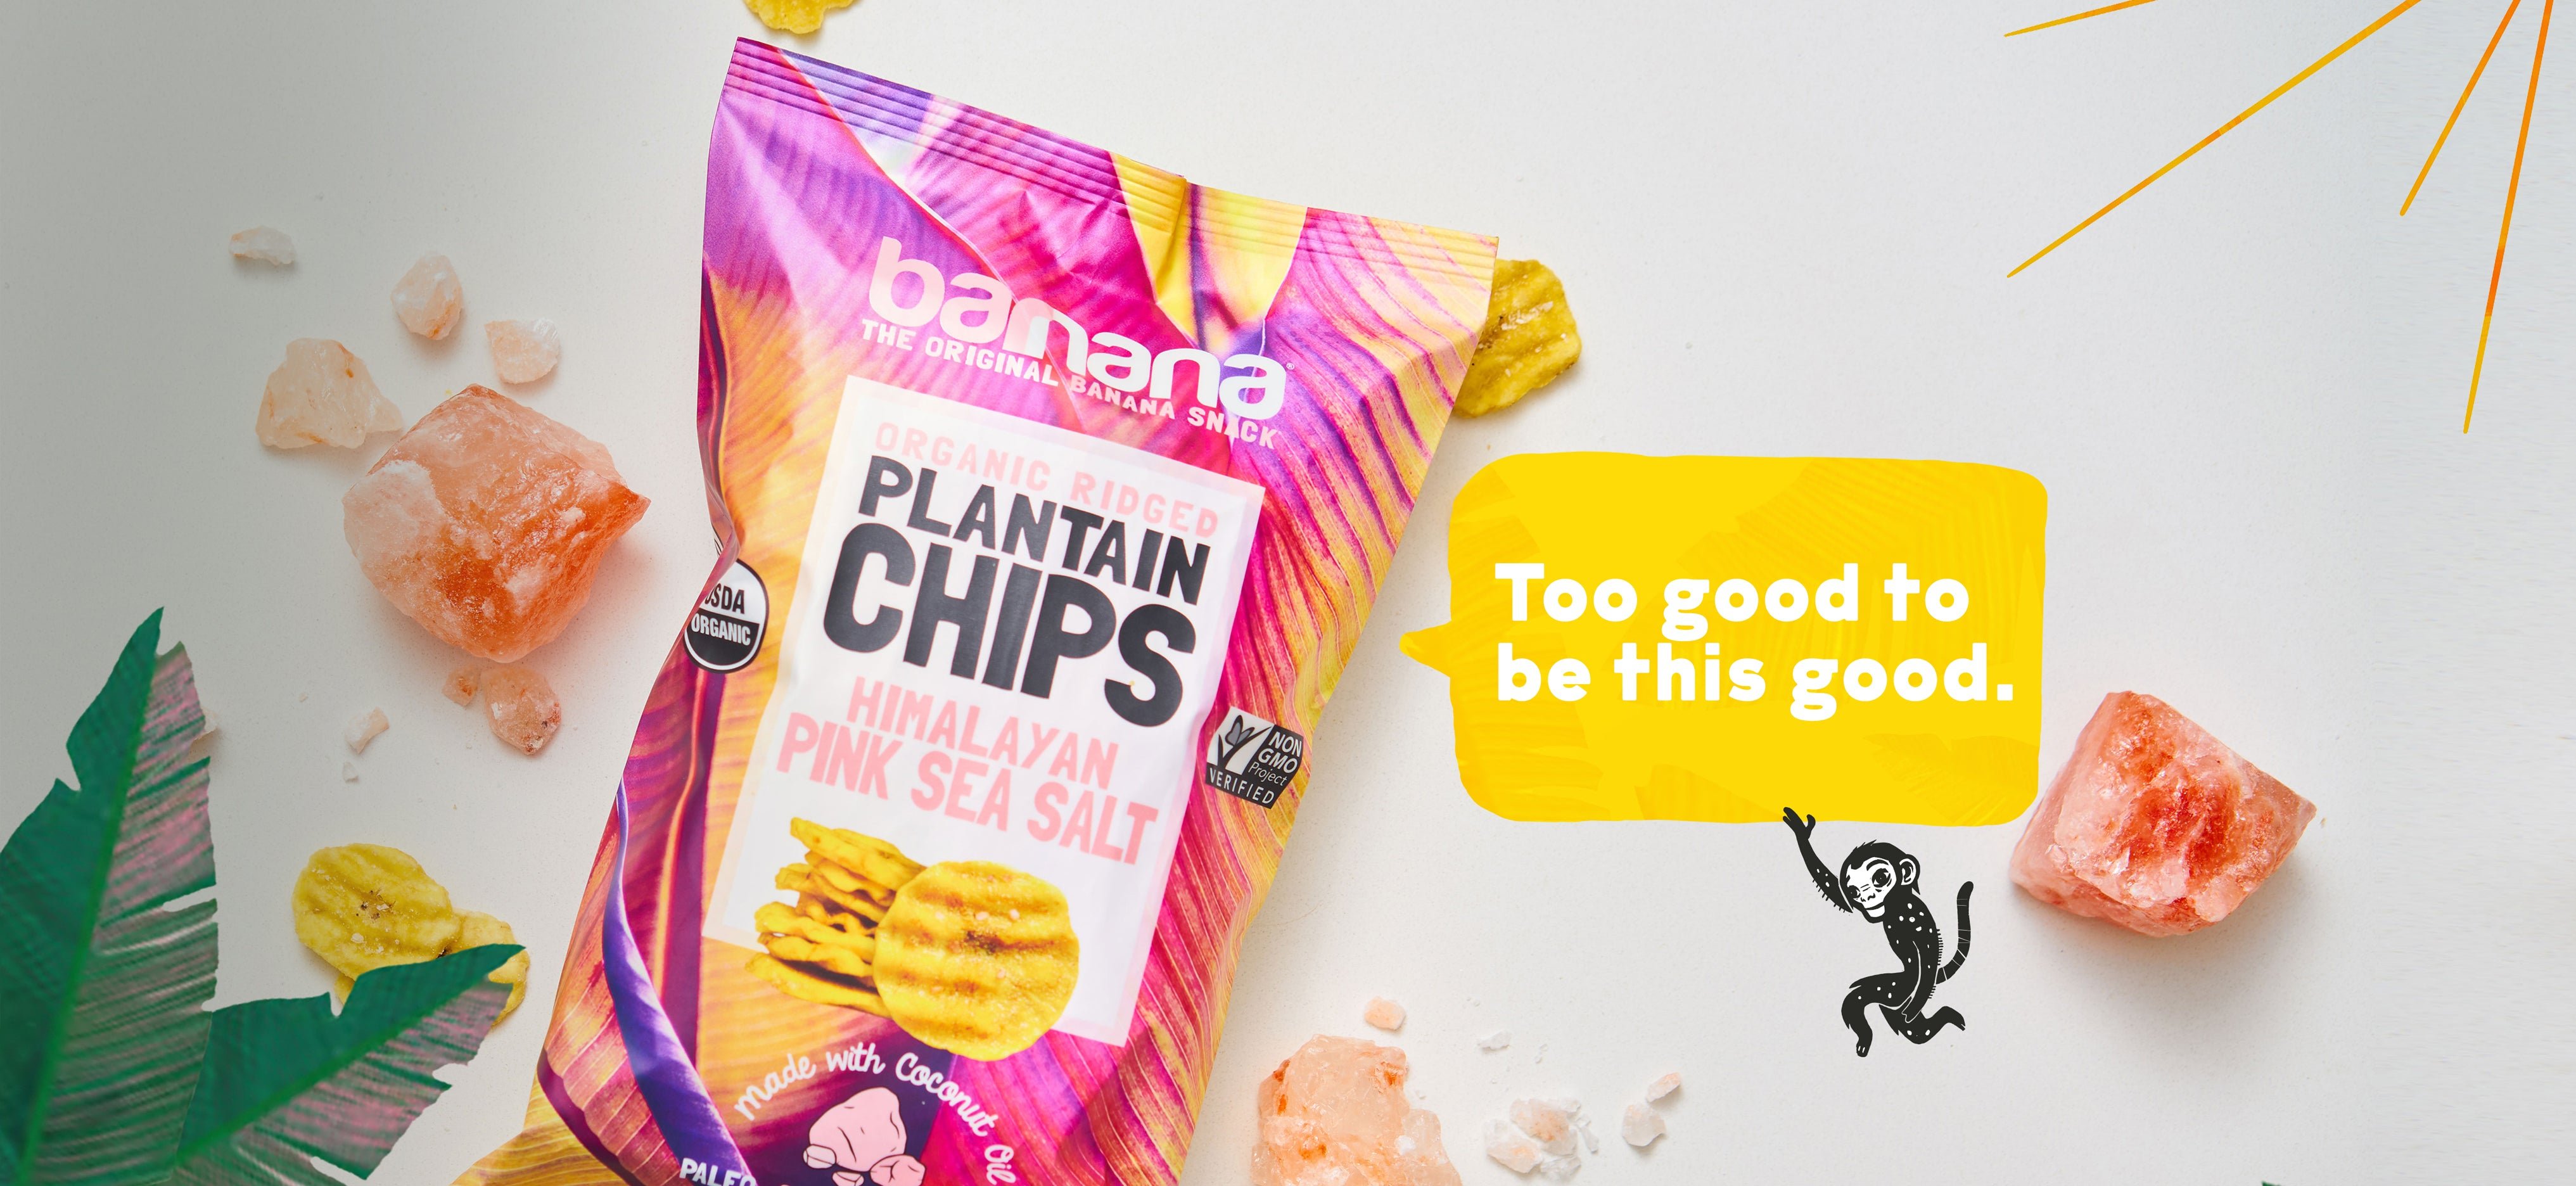 plantain chips barnana